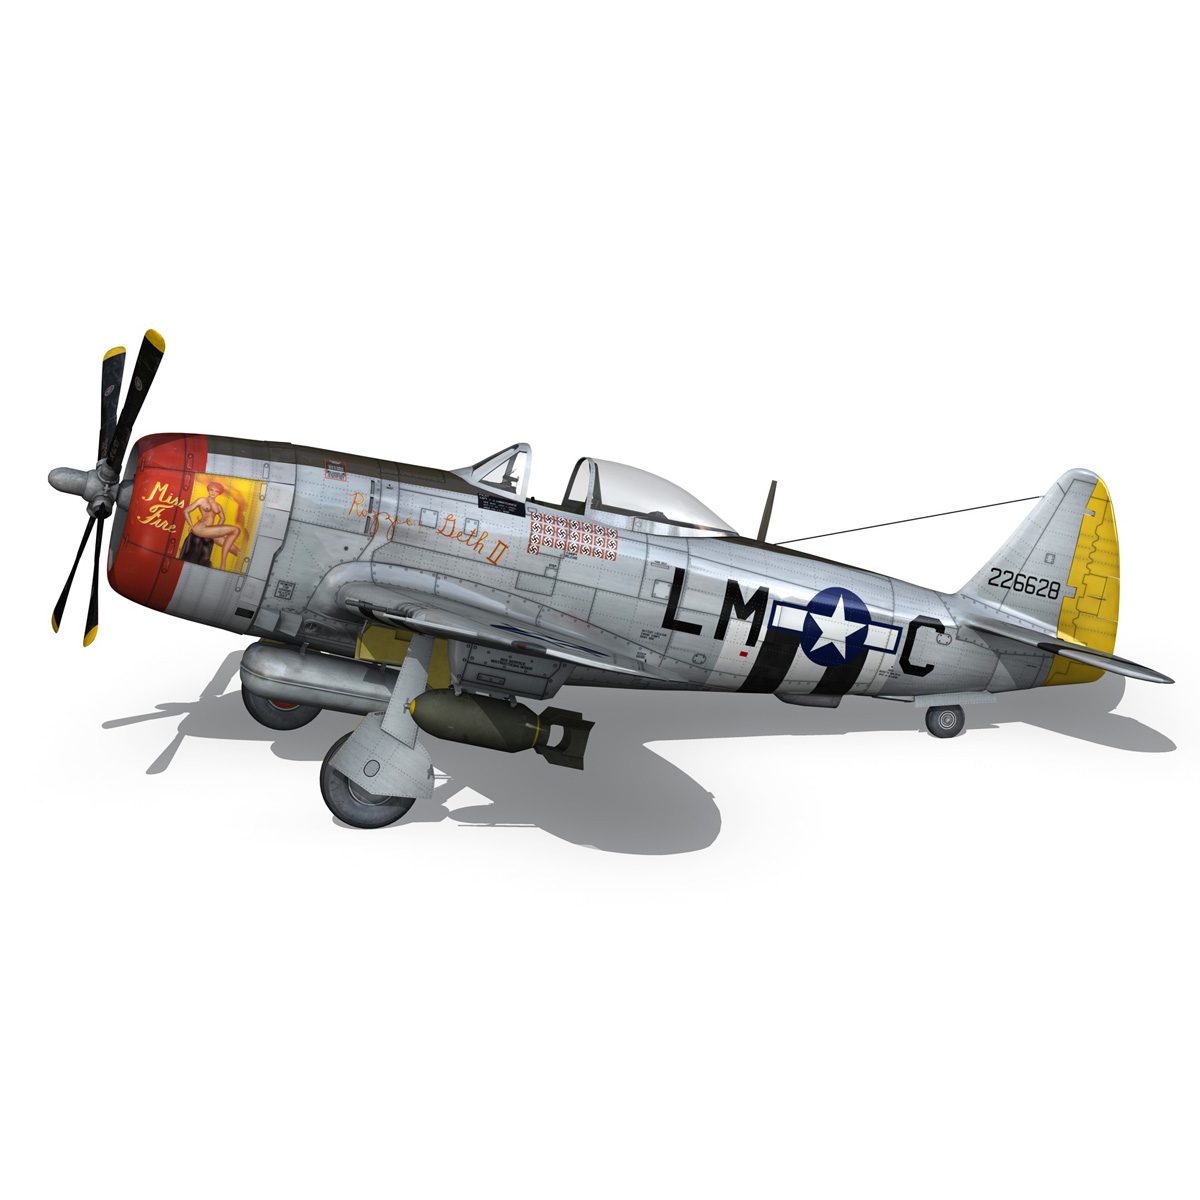 Republic P-47D Thunderbolt - Rozzie Geth II 3d model  279777